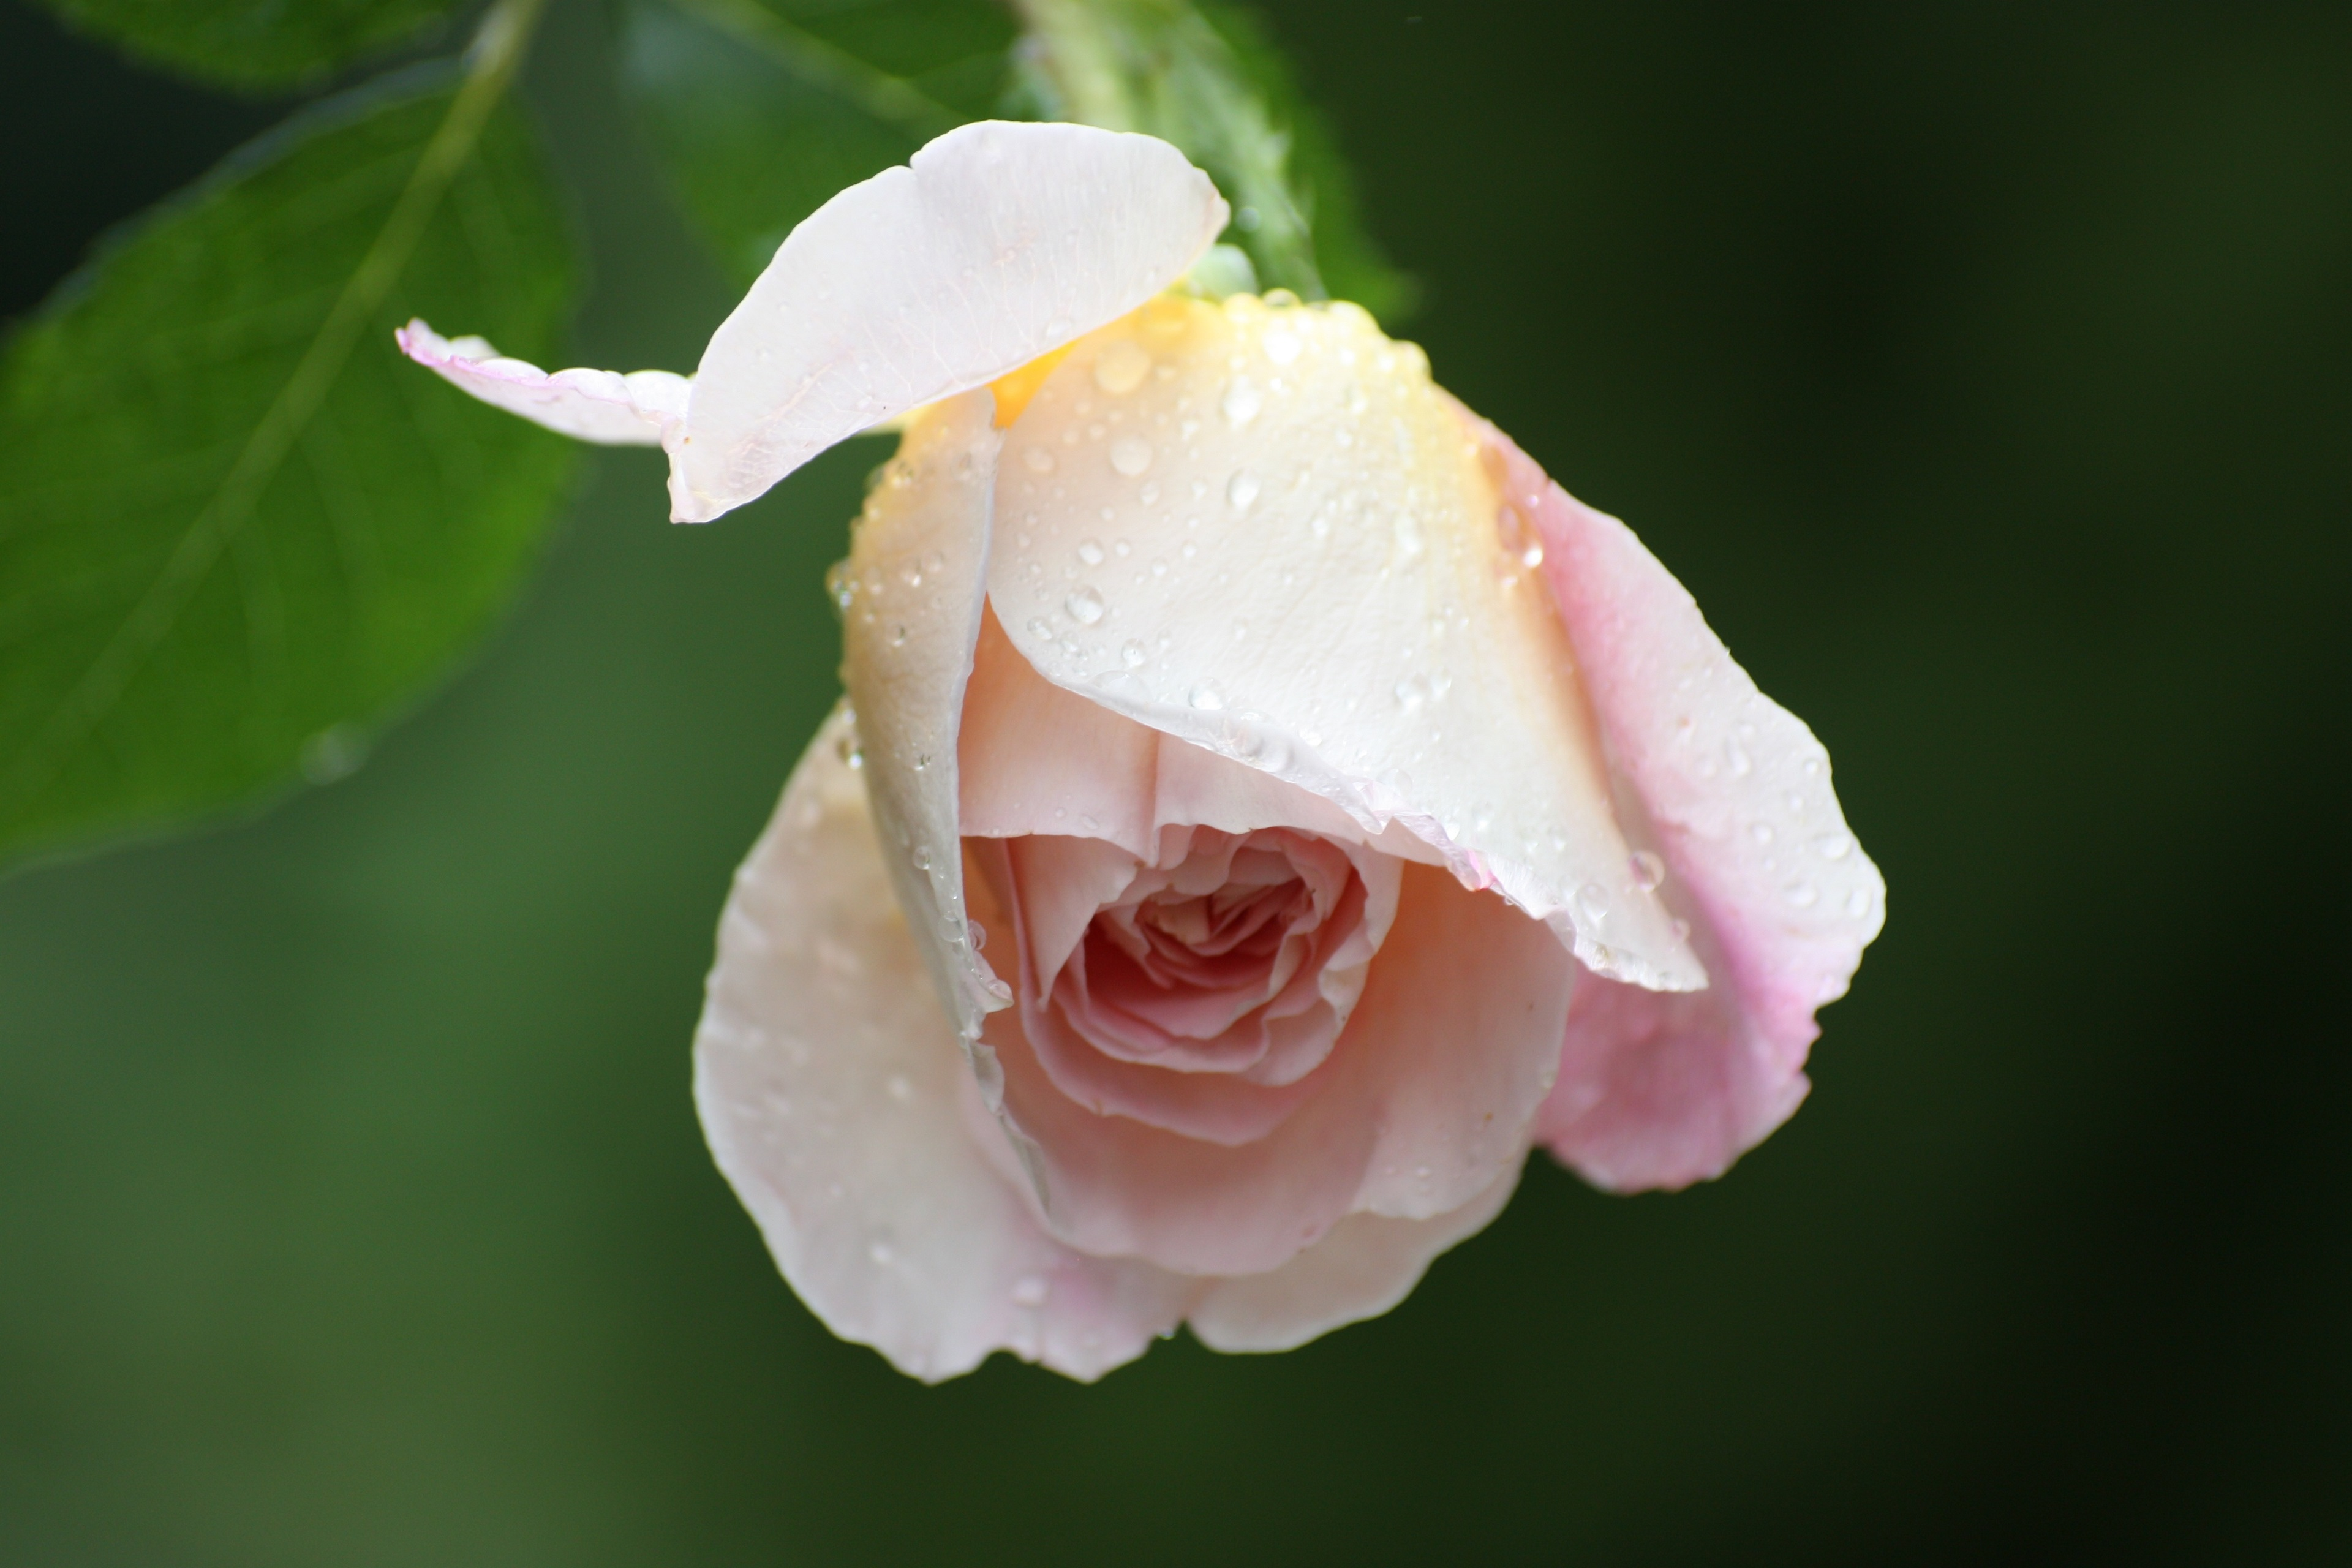 water drops on light pink rose wallpaper background